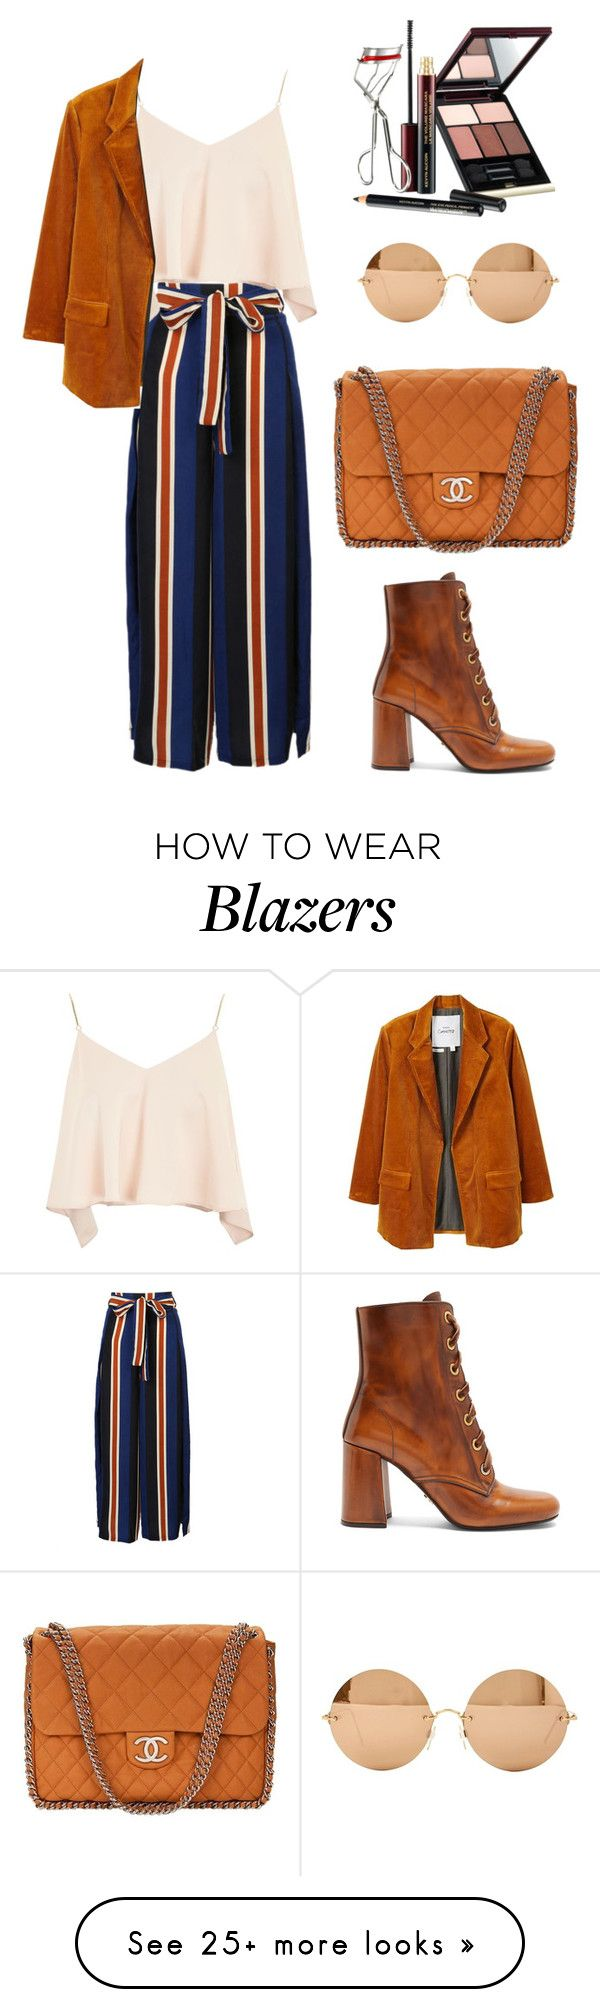 """""""Senza titolo #1837"""" by merypr on Polyvore featuring WithChic, Topshop, MANGO, Prada, Chanel, Victoria Beckham and Kevyn Aucoin"""